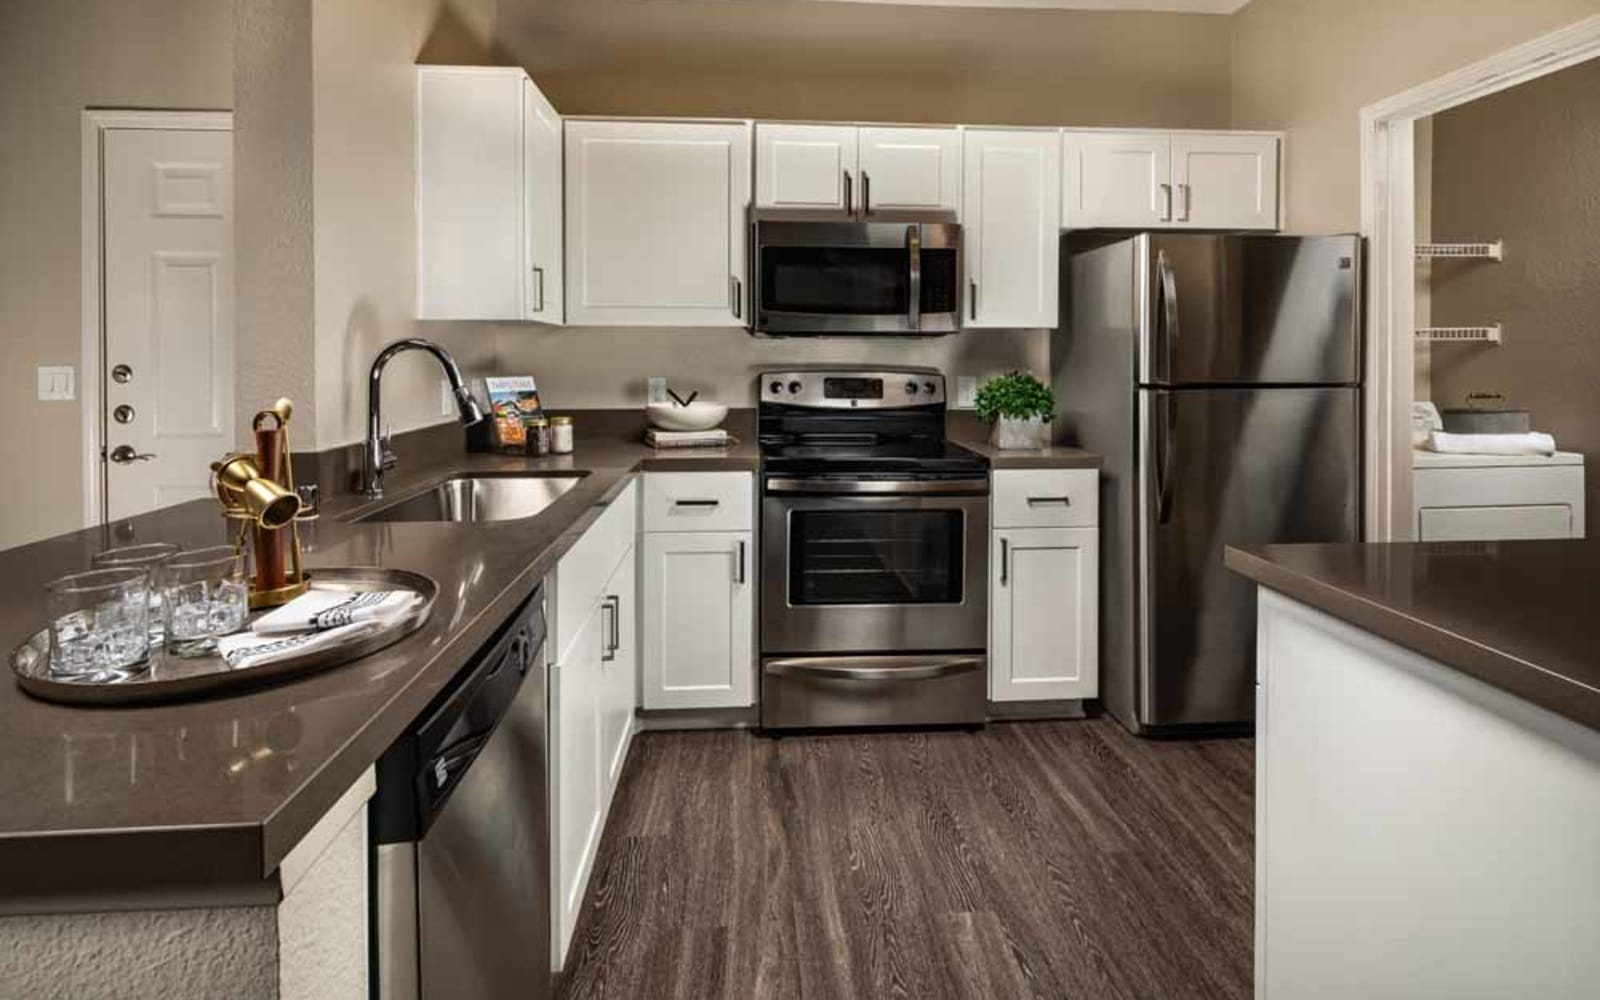 Stainless steel appliances in an apartment kitchen at Colonnade at Sycamore Highlands in Riverside, California